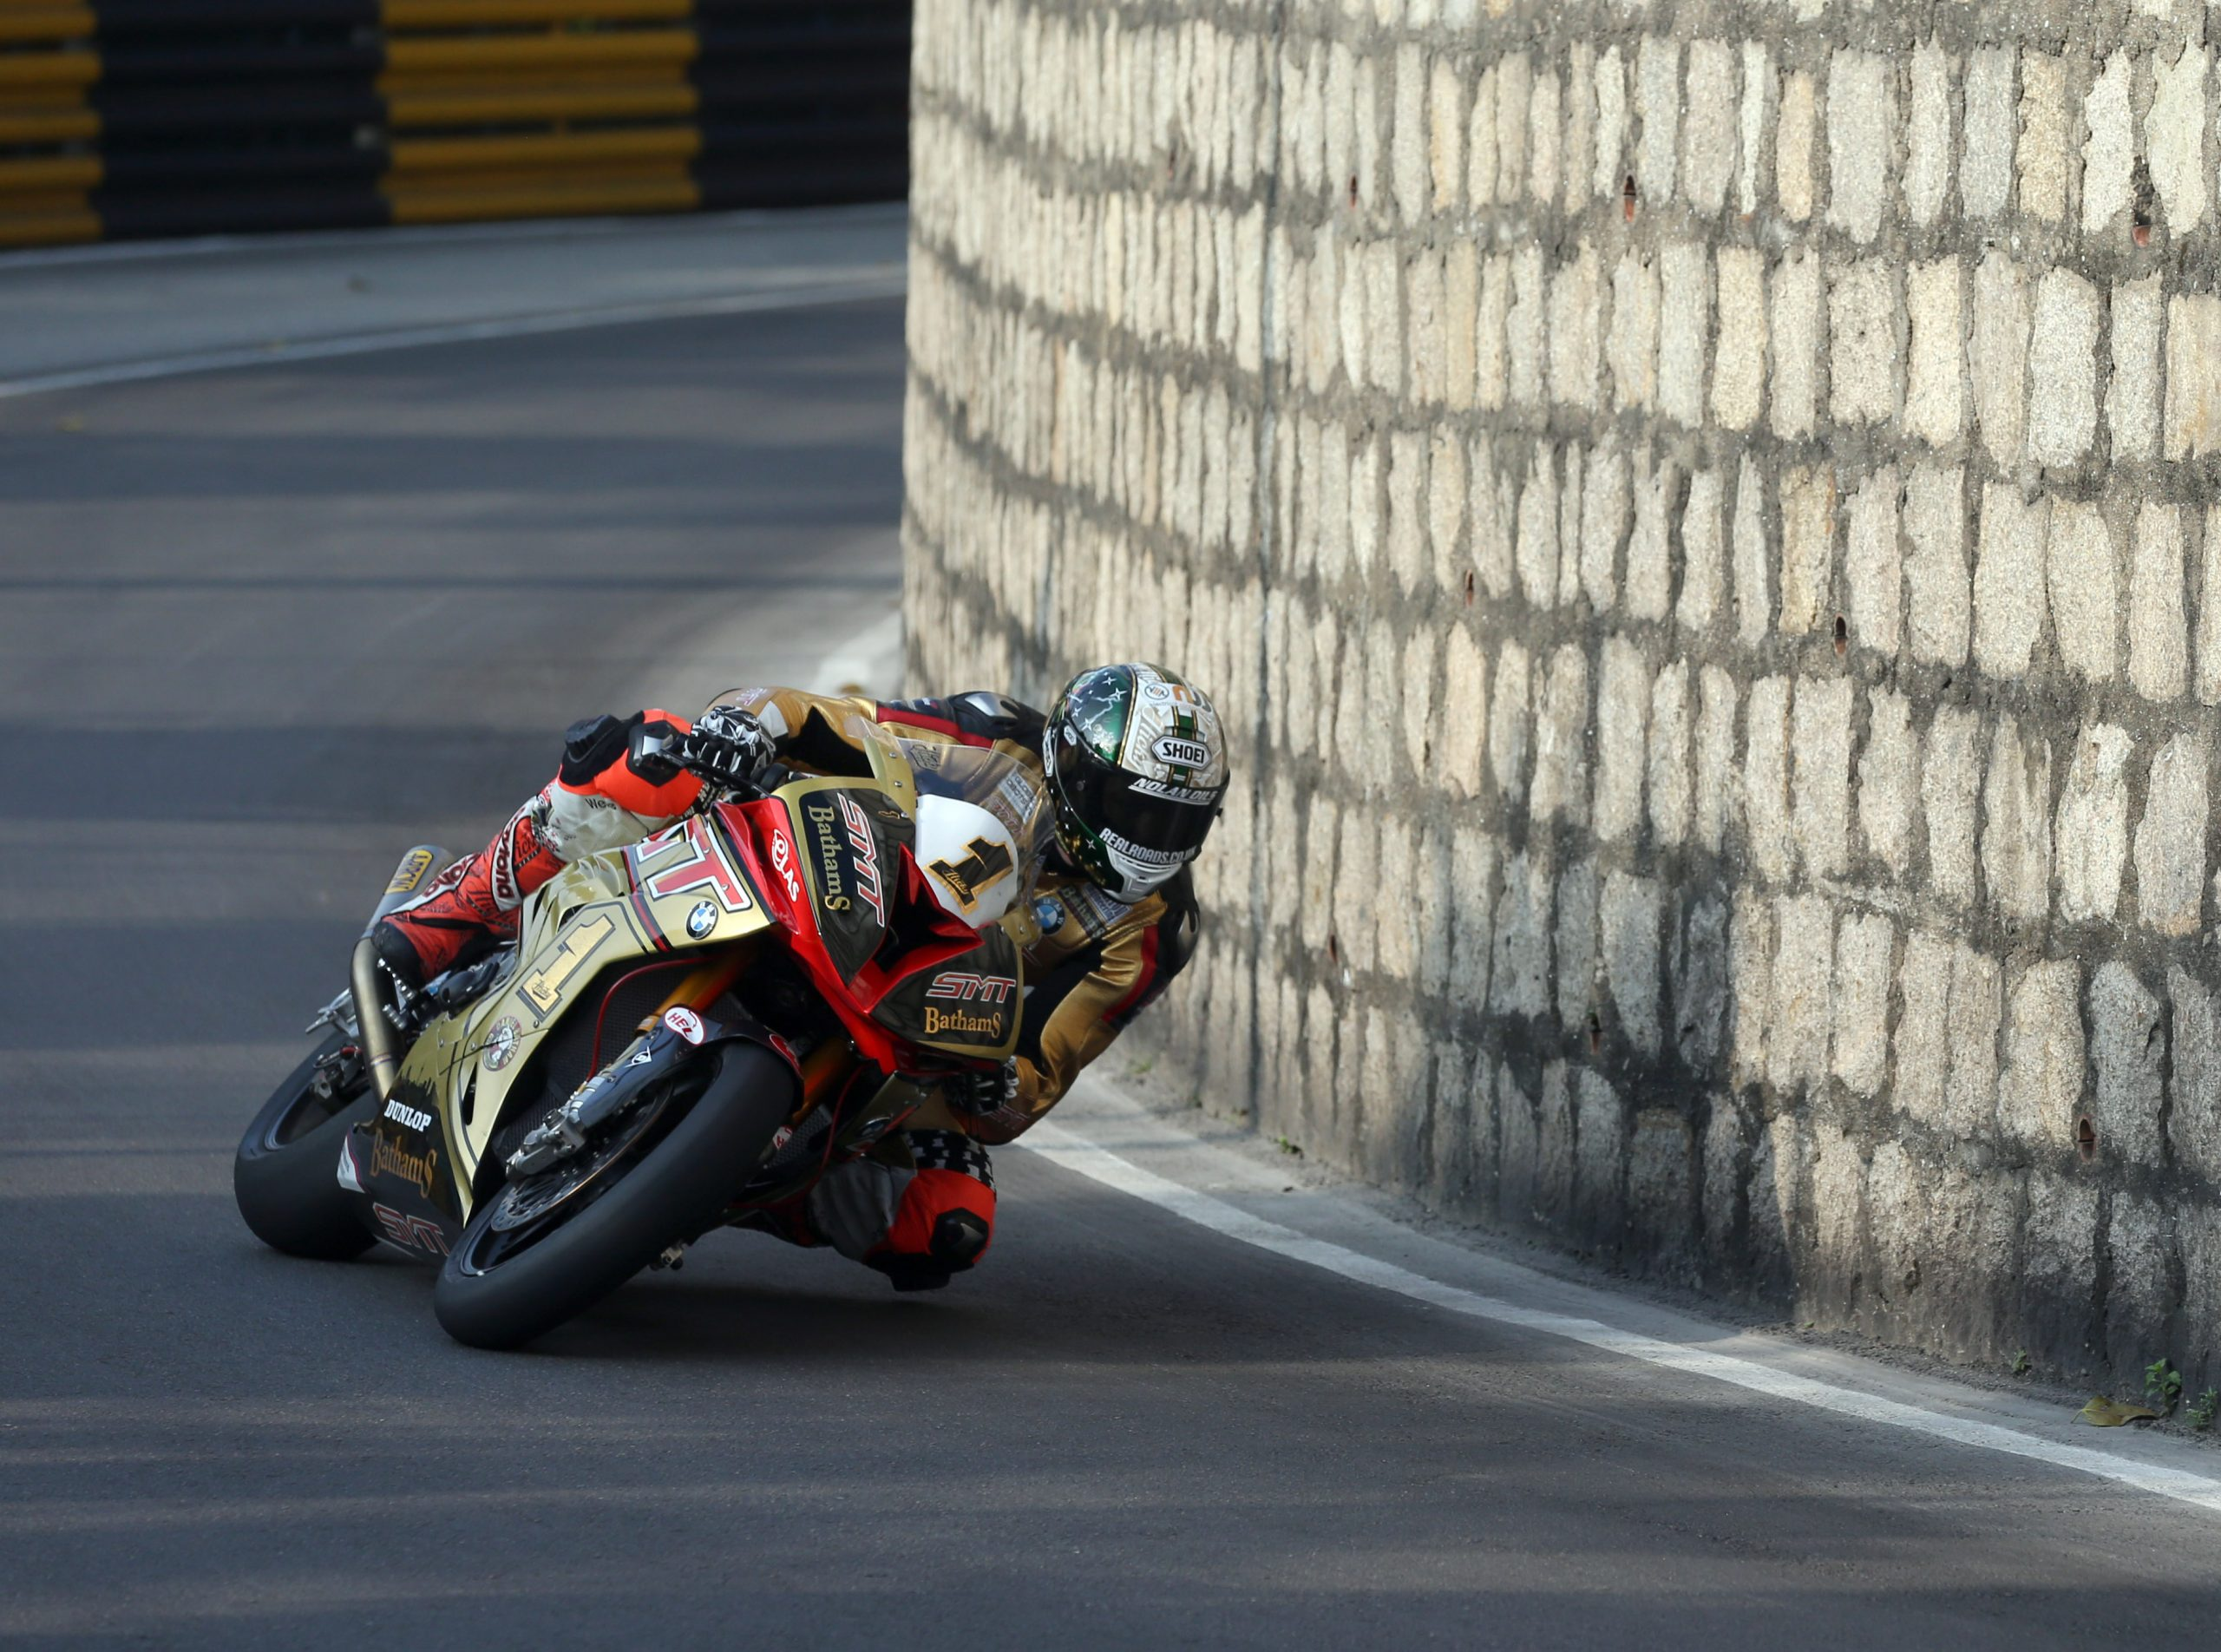 Peter Hickman Macau 2016 image credit by Stephen Davison (Pacemaker Press International)